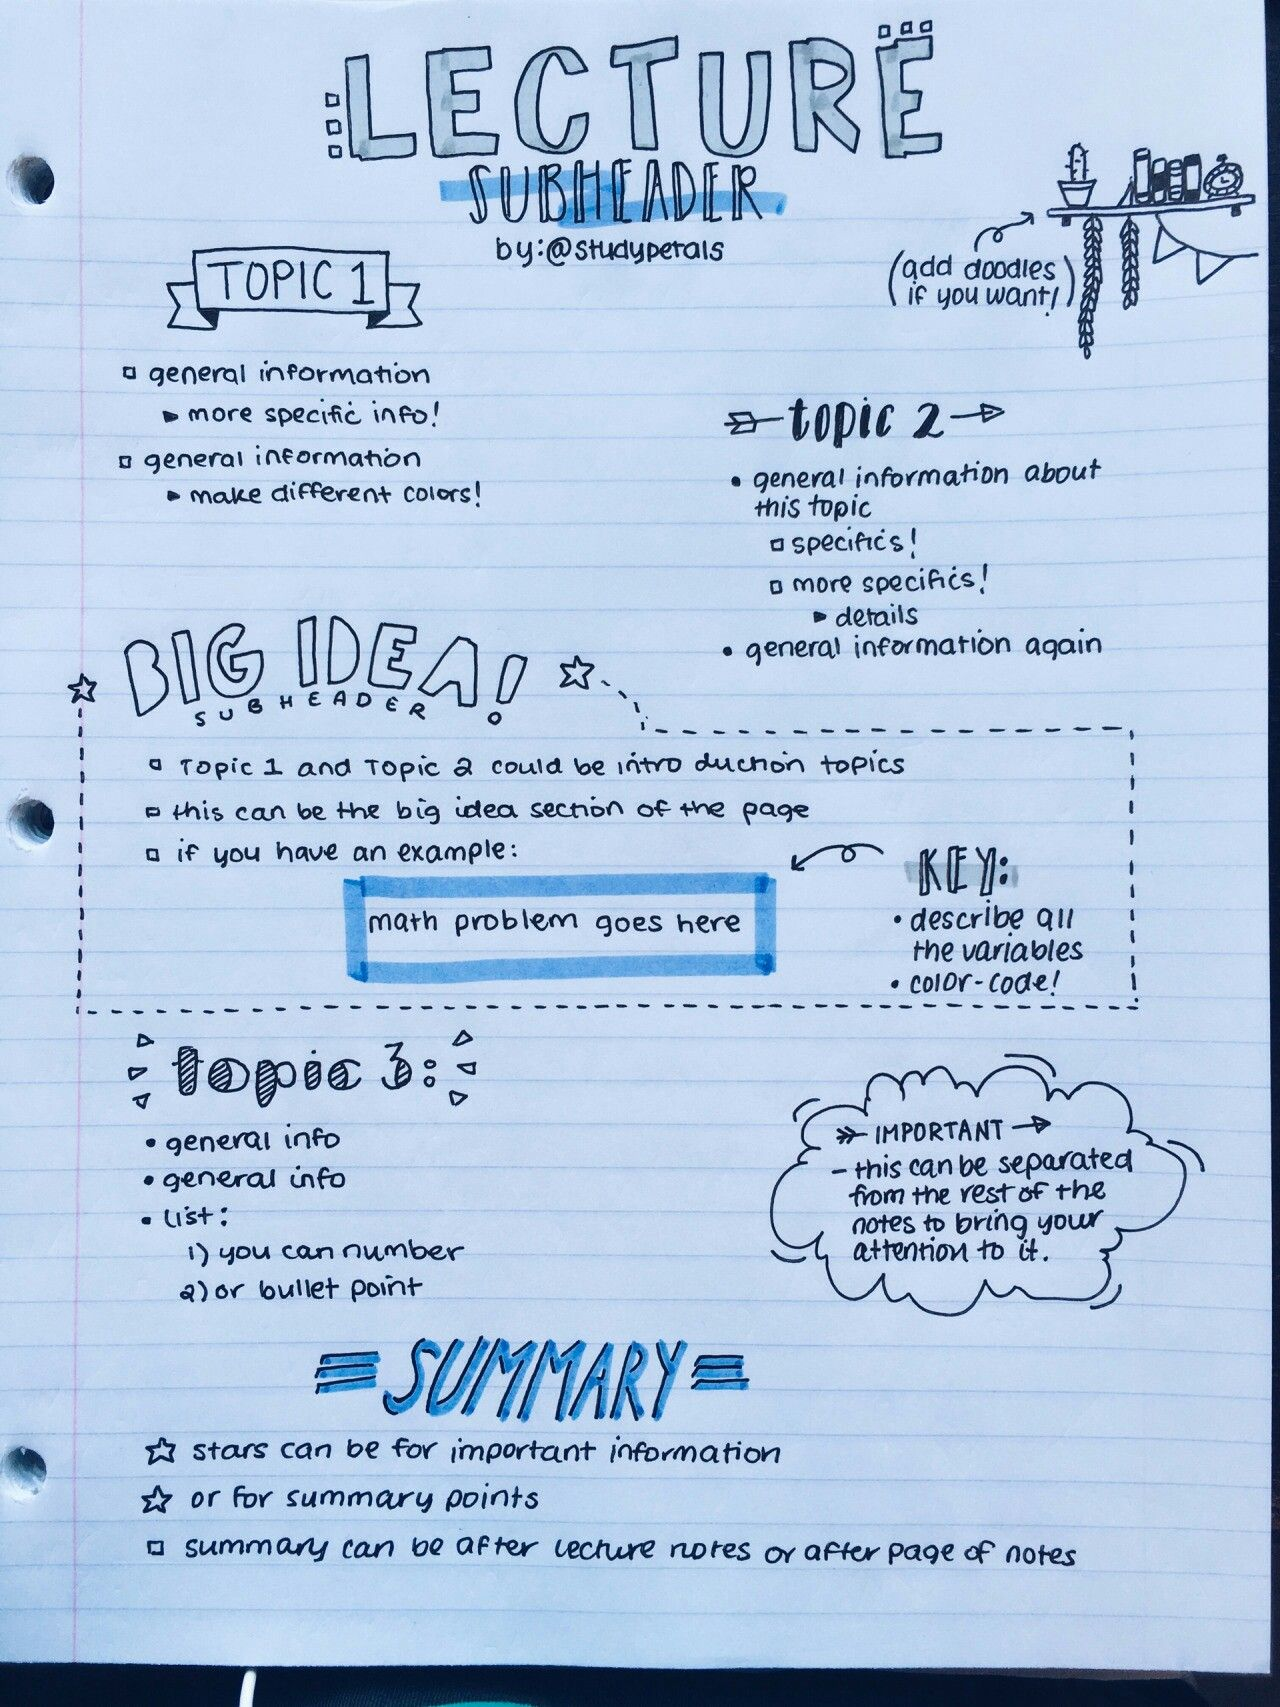 Aesthetic Note Taking Apps